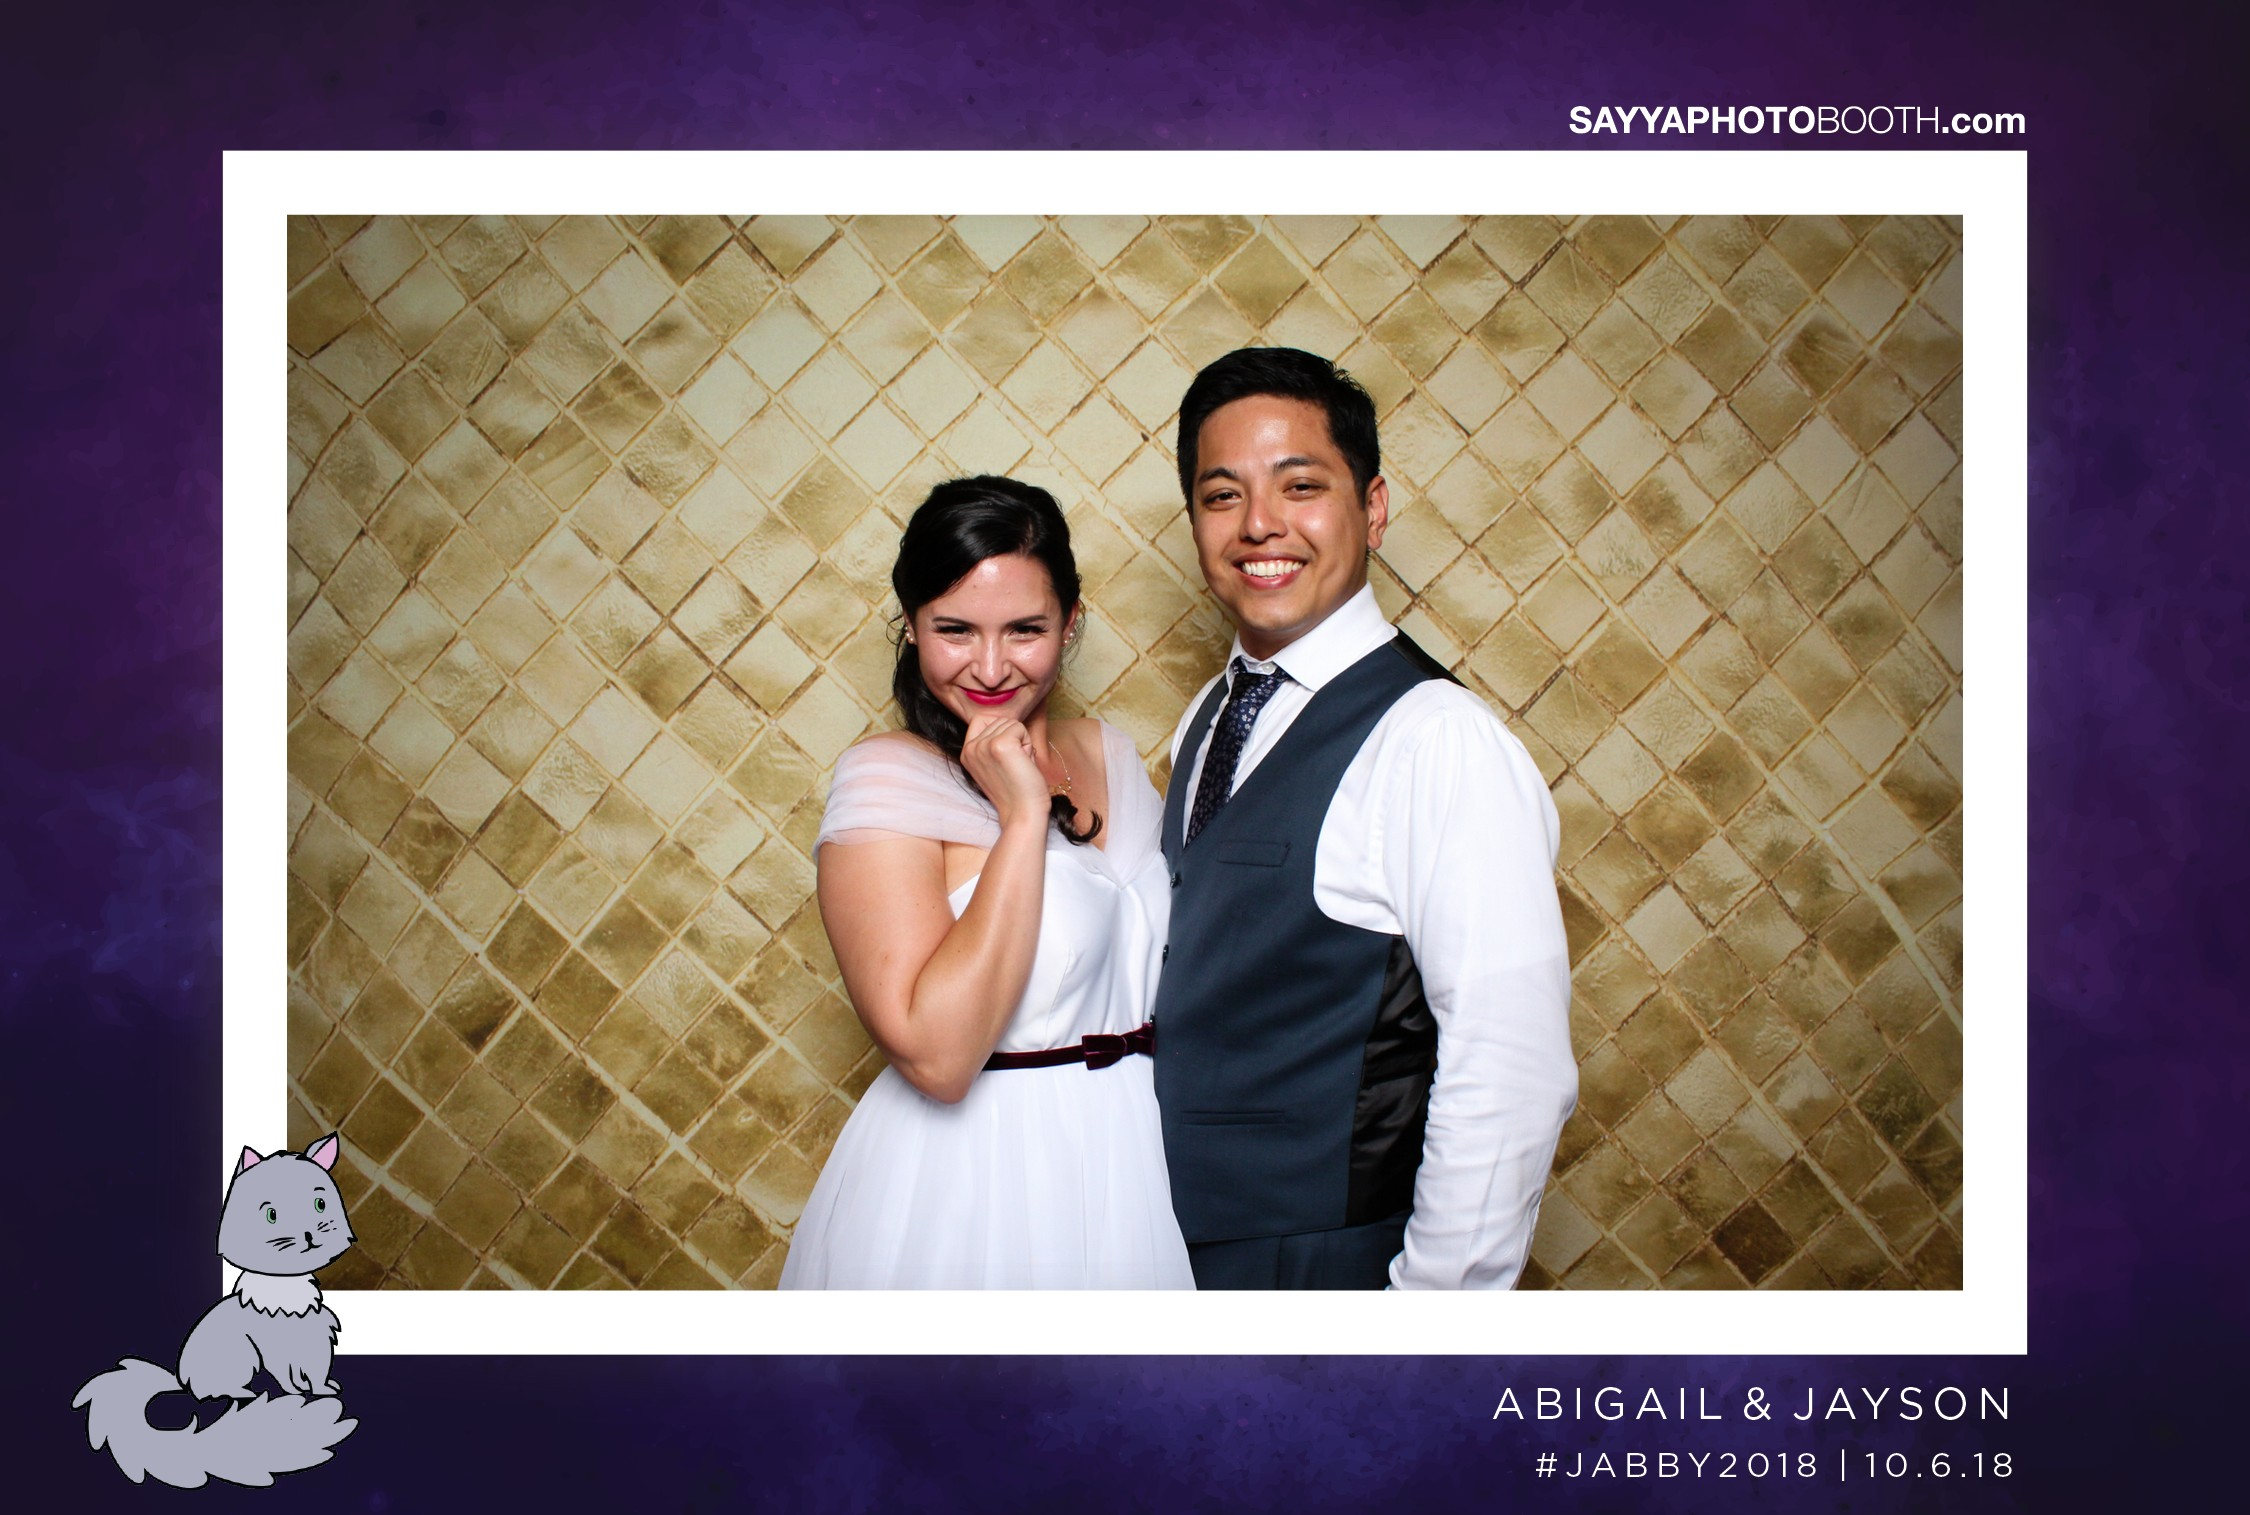 Abigail and Jayson's Wedding